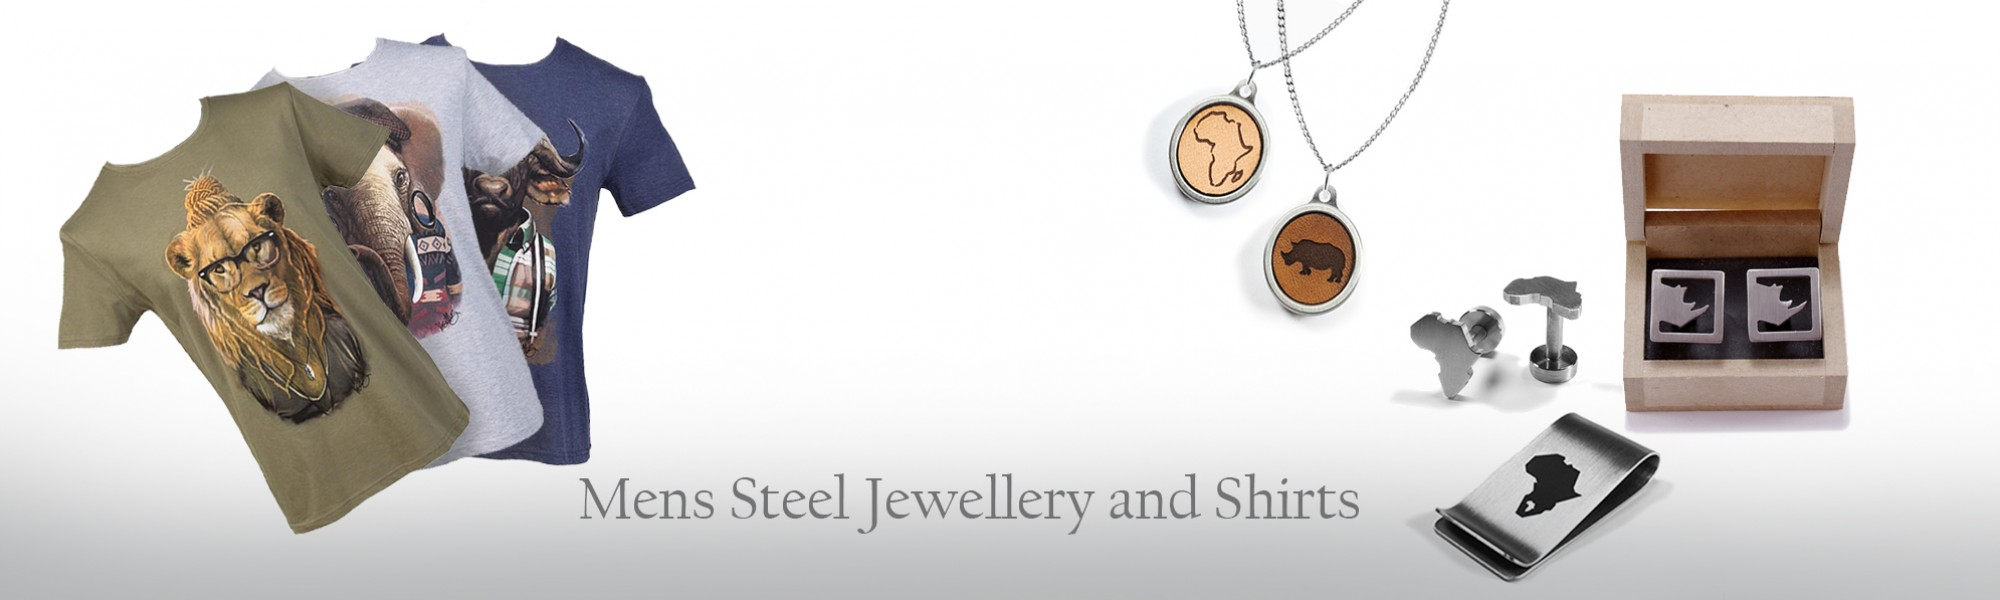 Men's Steel Jewellery and Shirts